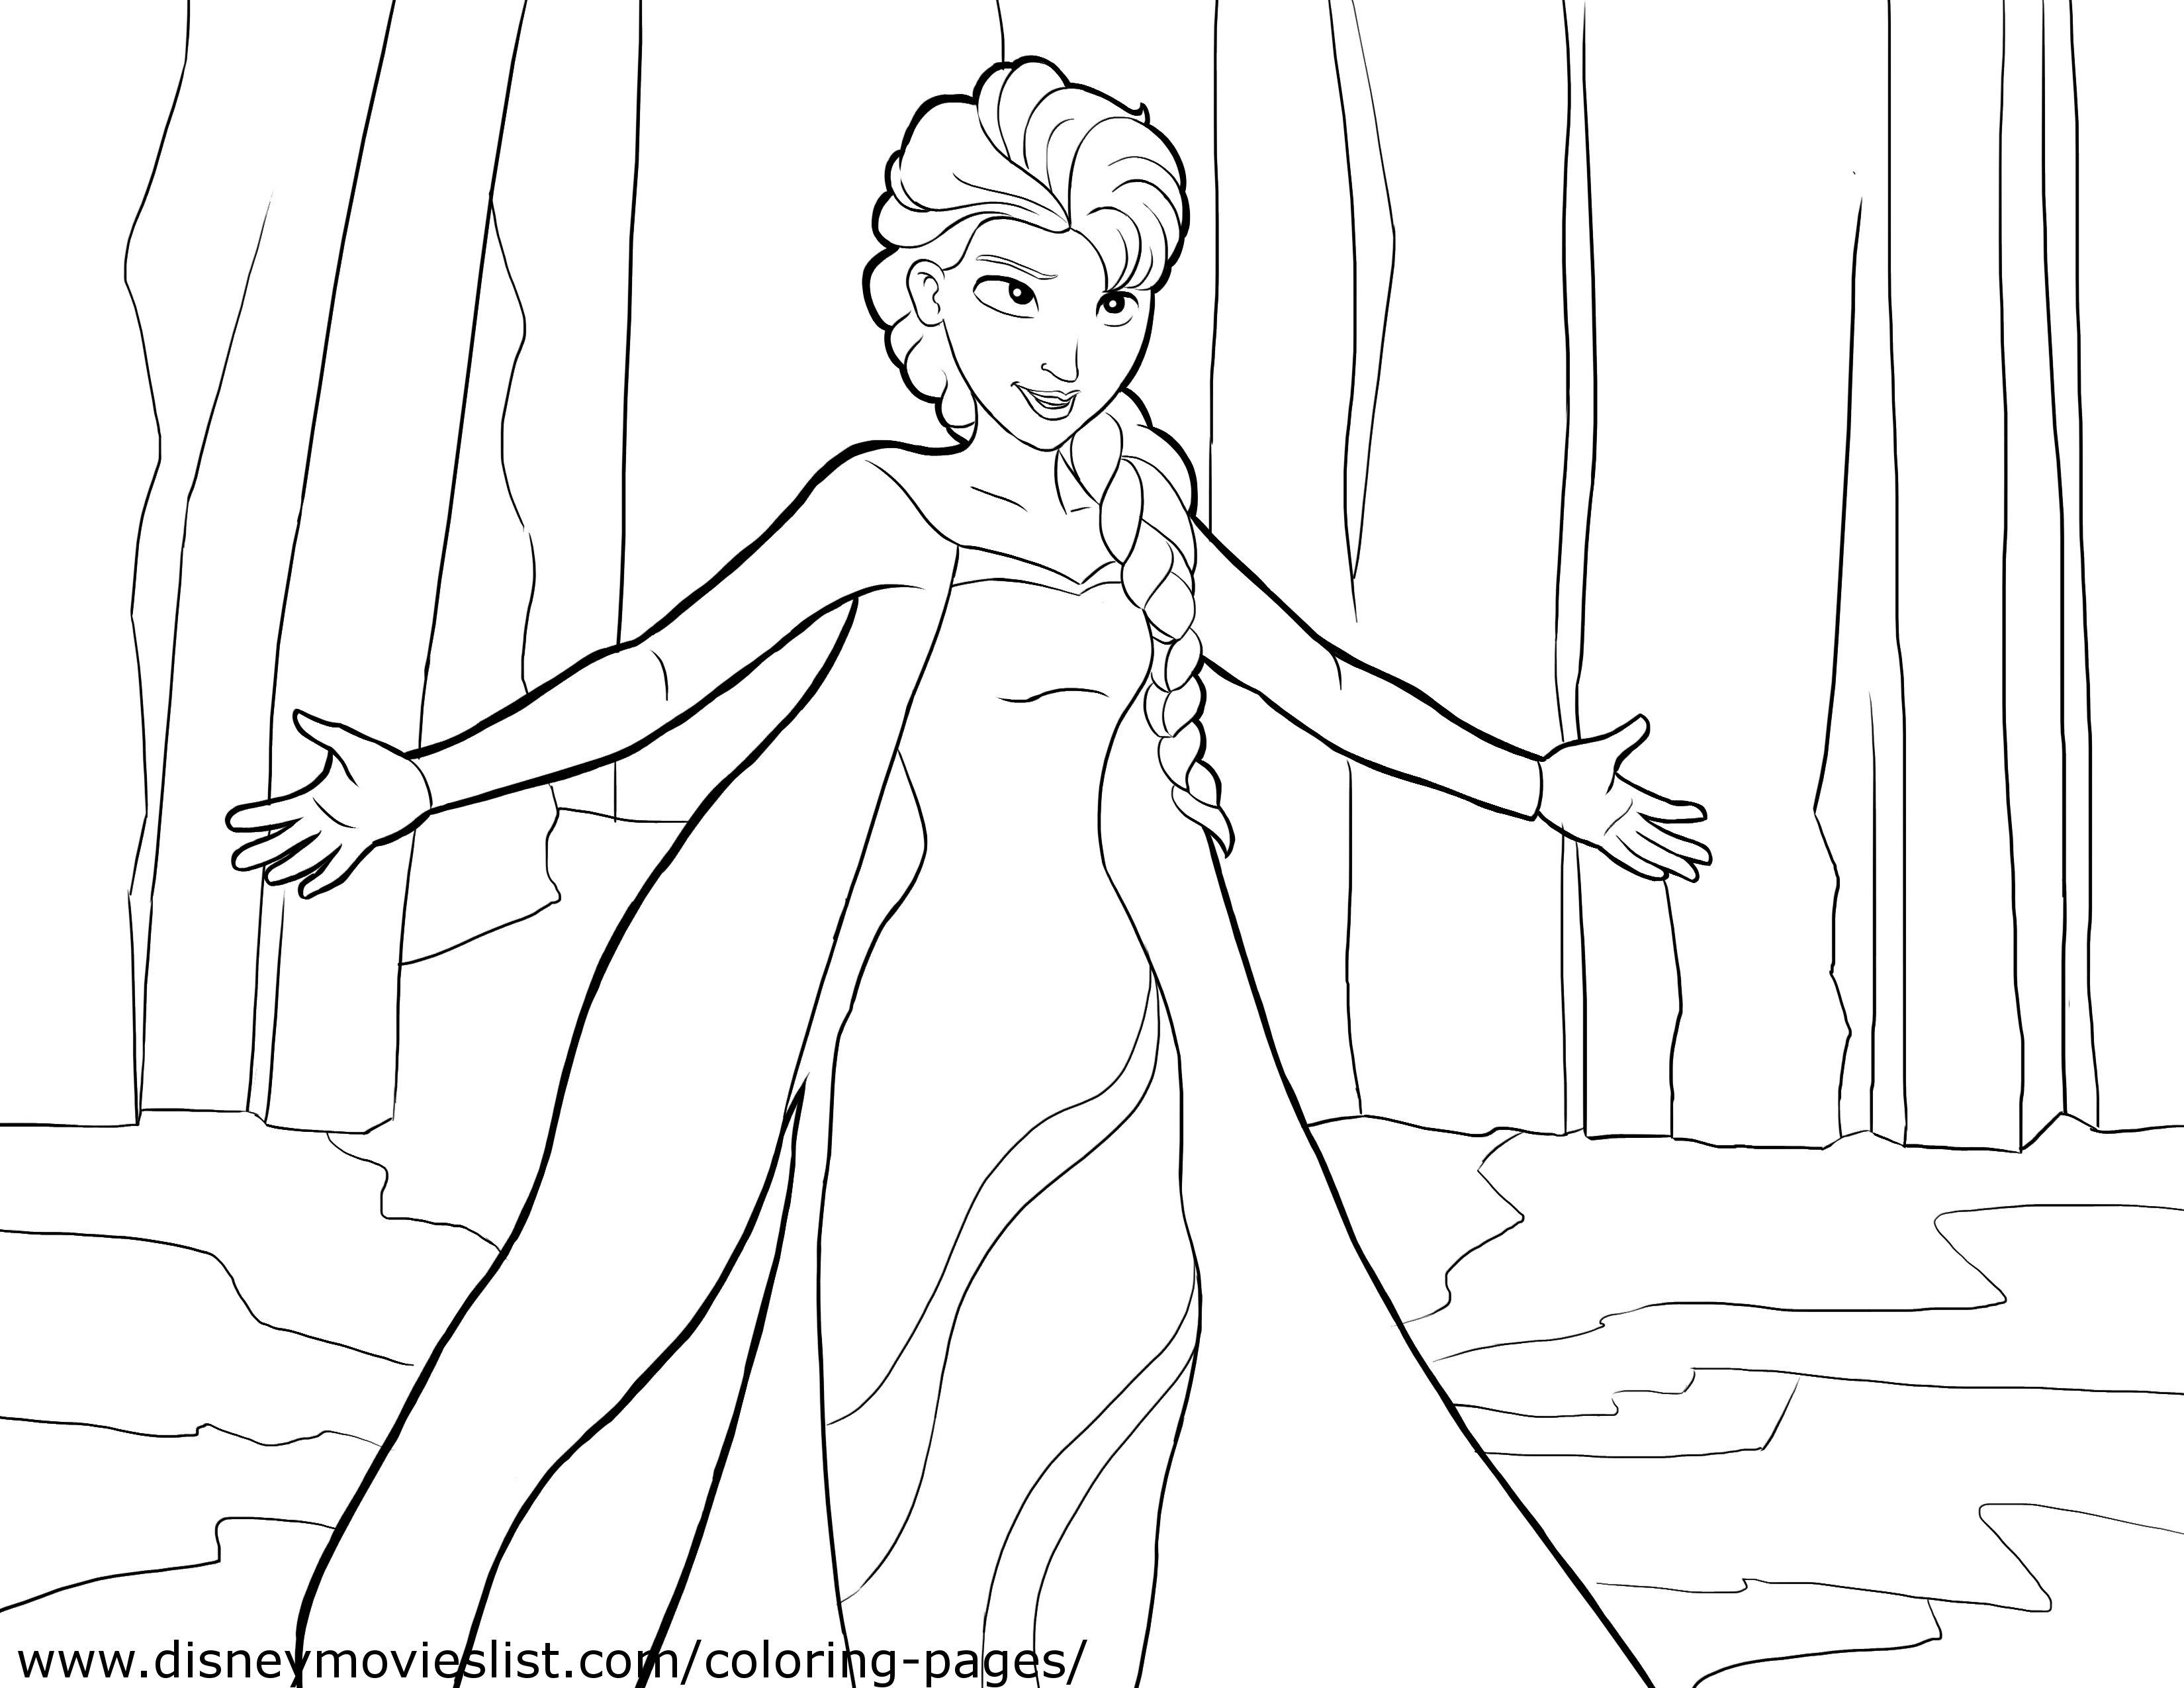 Disney Frozen Coloring Sheets Frozen Coloring Pages Frozen Photo 36145765 Fanpop Frozen Coloring Pages Elsa Coloring Pages Free Disney Coloring Pages